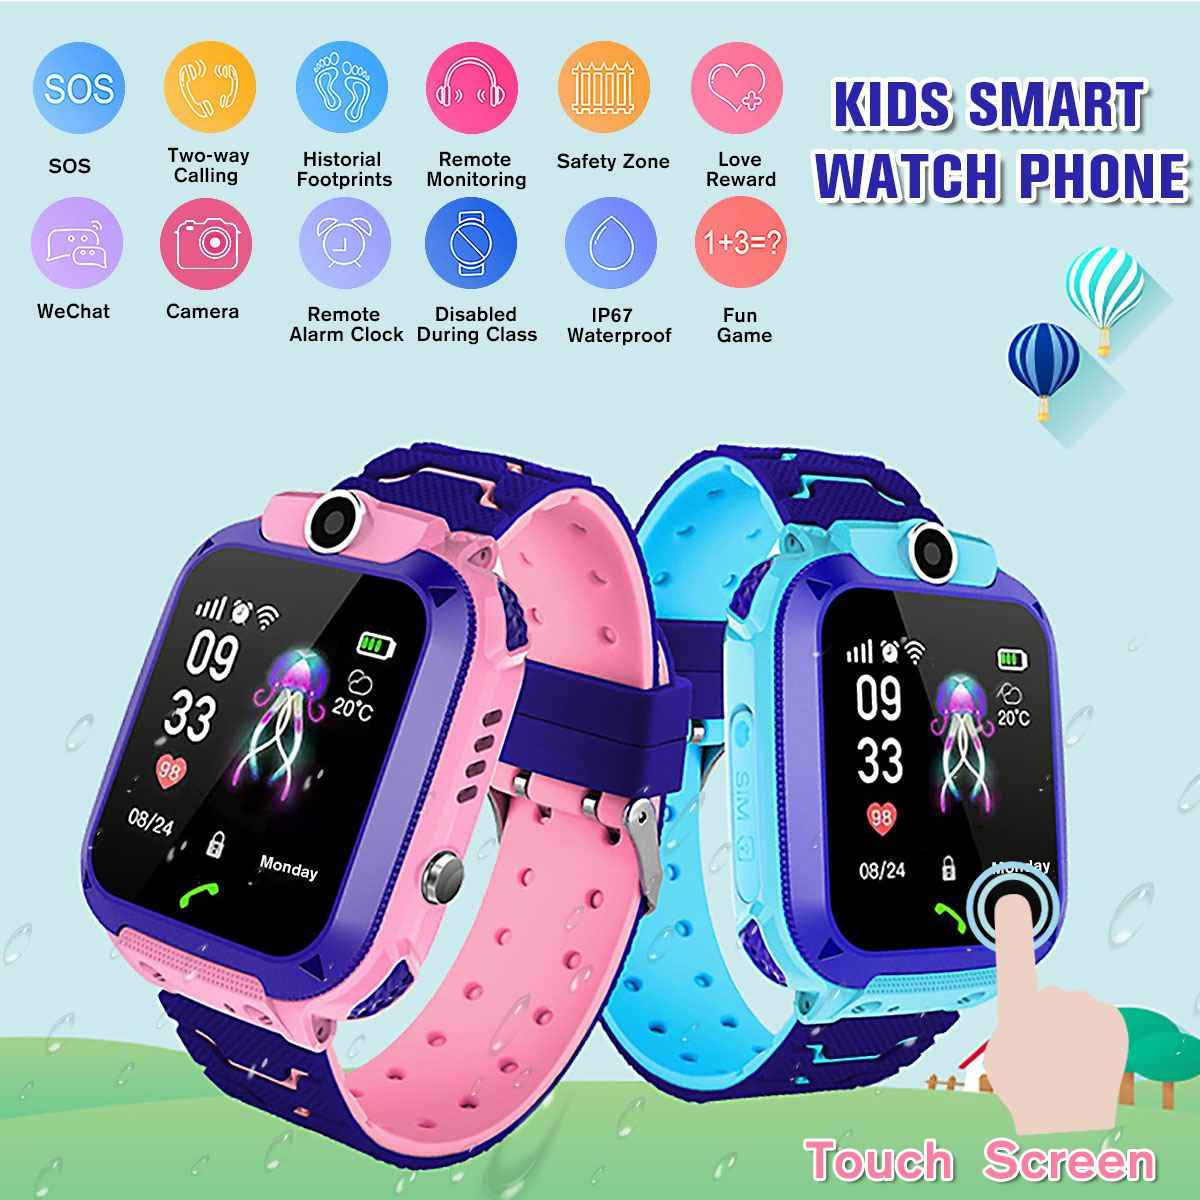 Children's Smart Phone Watch Smart Watch Anti-lost GPS Tracker Remote Photography Kids Smartwatch for Android IOS